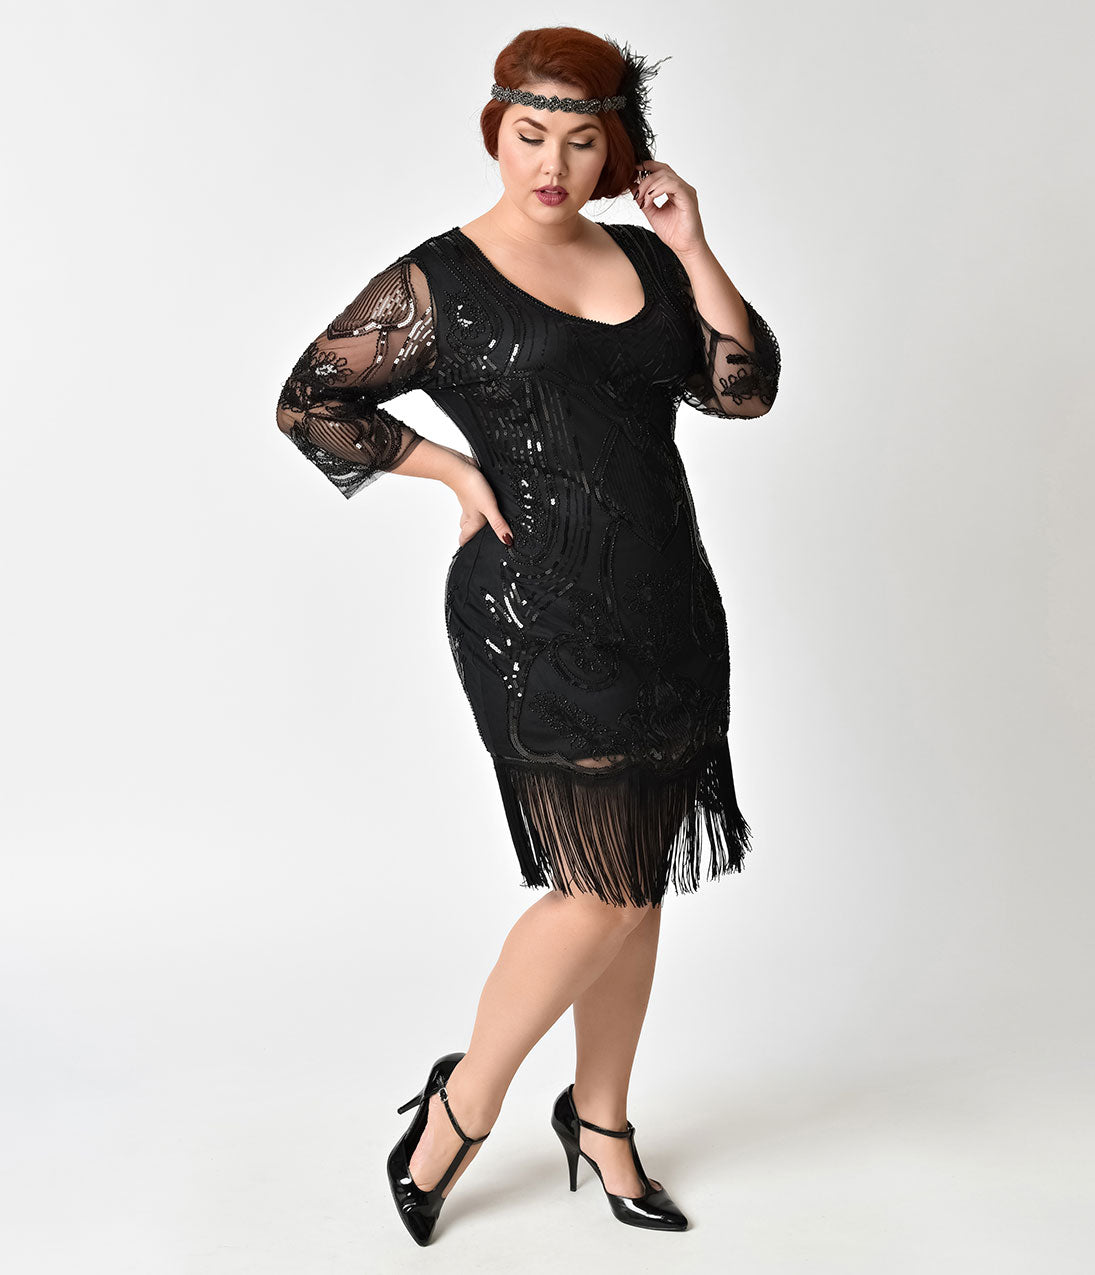 Flapper Dresses & Quality Flapper Costumes Unique Vintage Plus Size Black Beaded  Sequin Margaux Sleeved Fringe Flapper Dress $110.00 AT vintagedancer.com